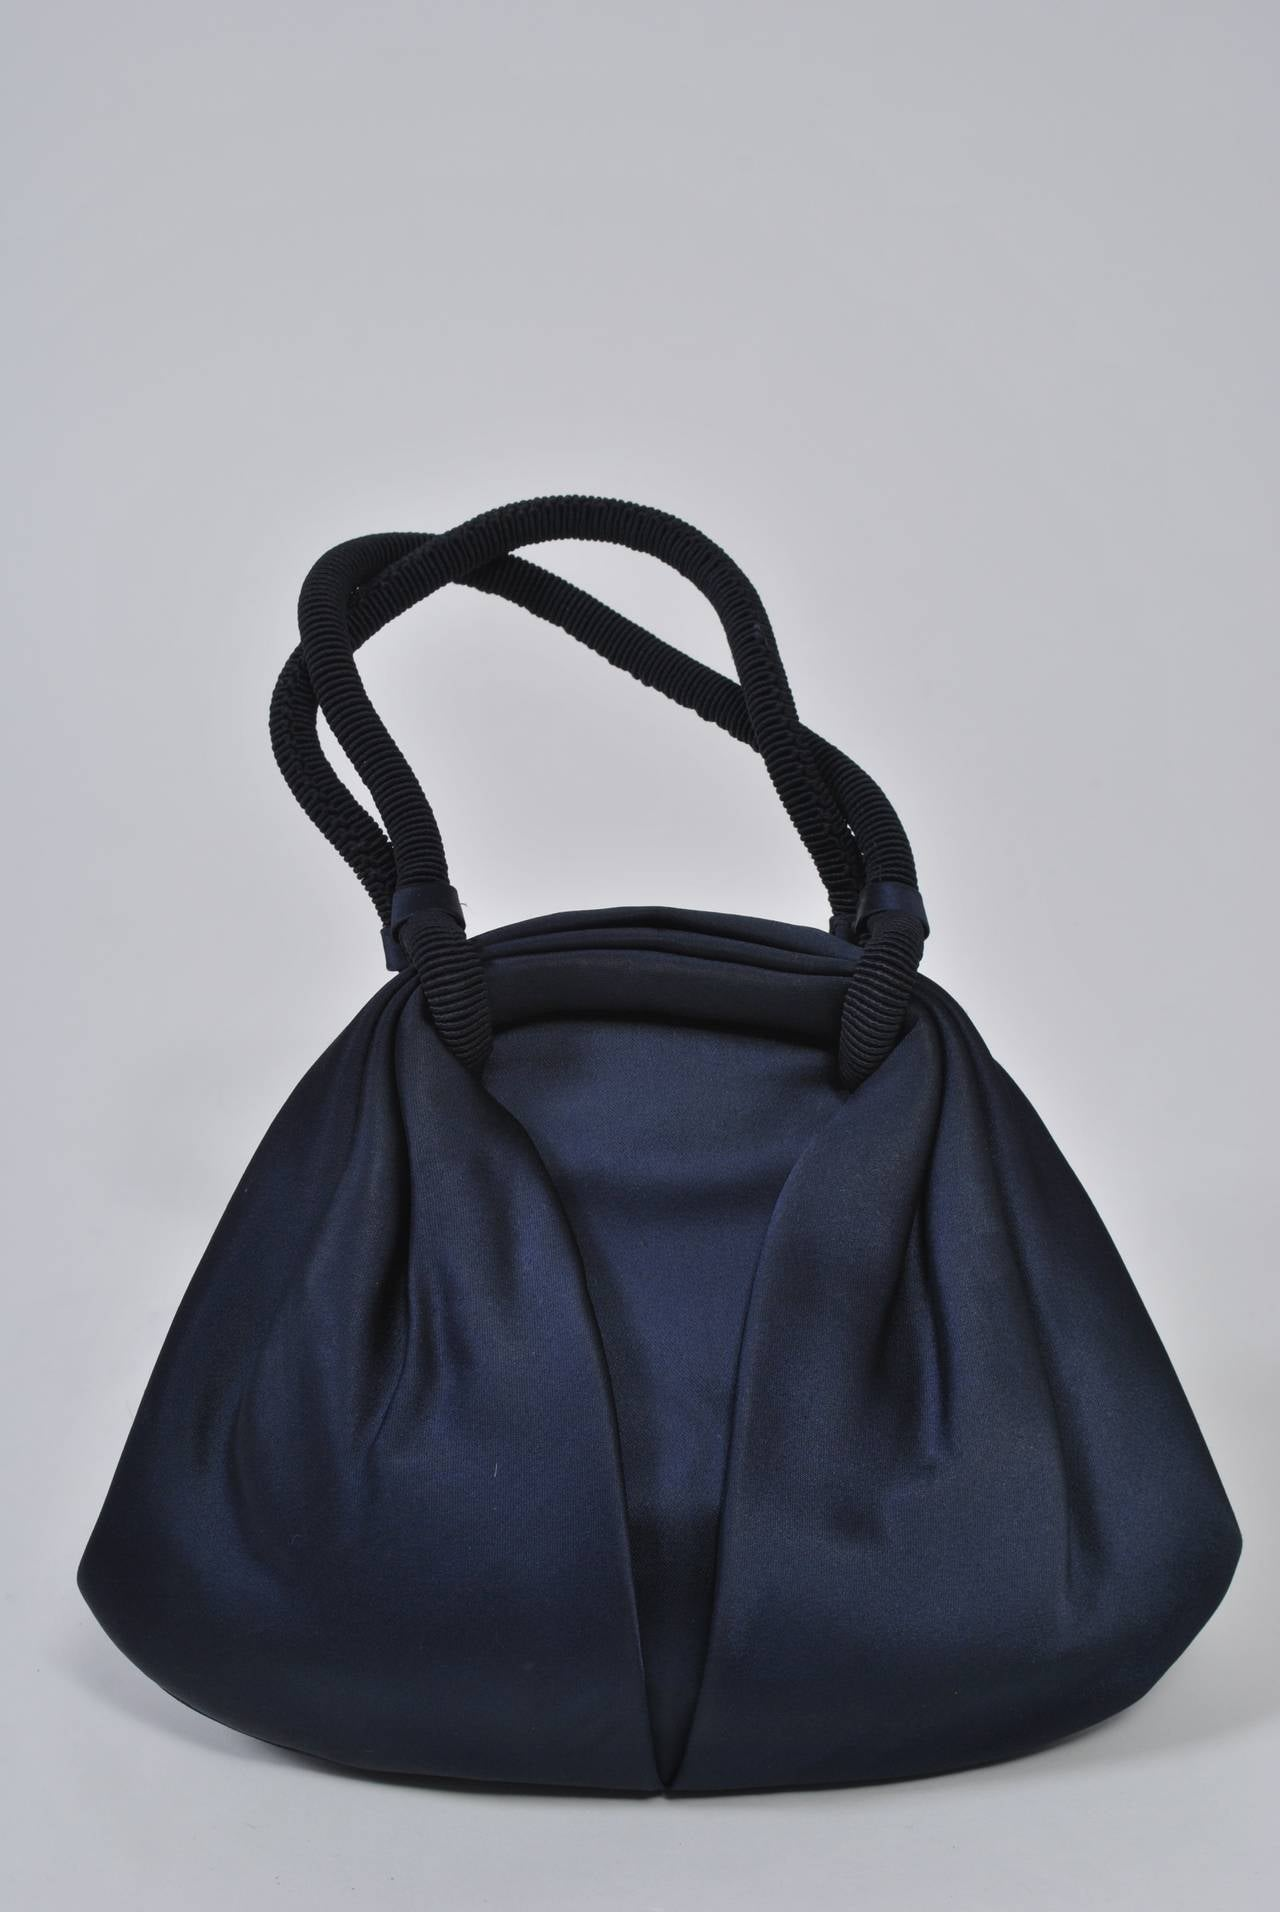 Navy Satin Purse with Tortoise Kiss Clasp, Paris 4